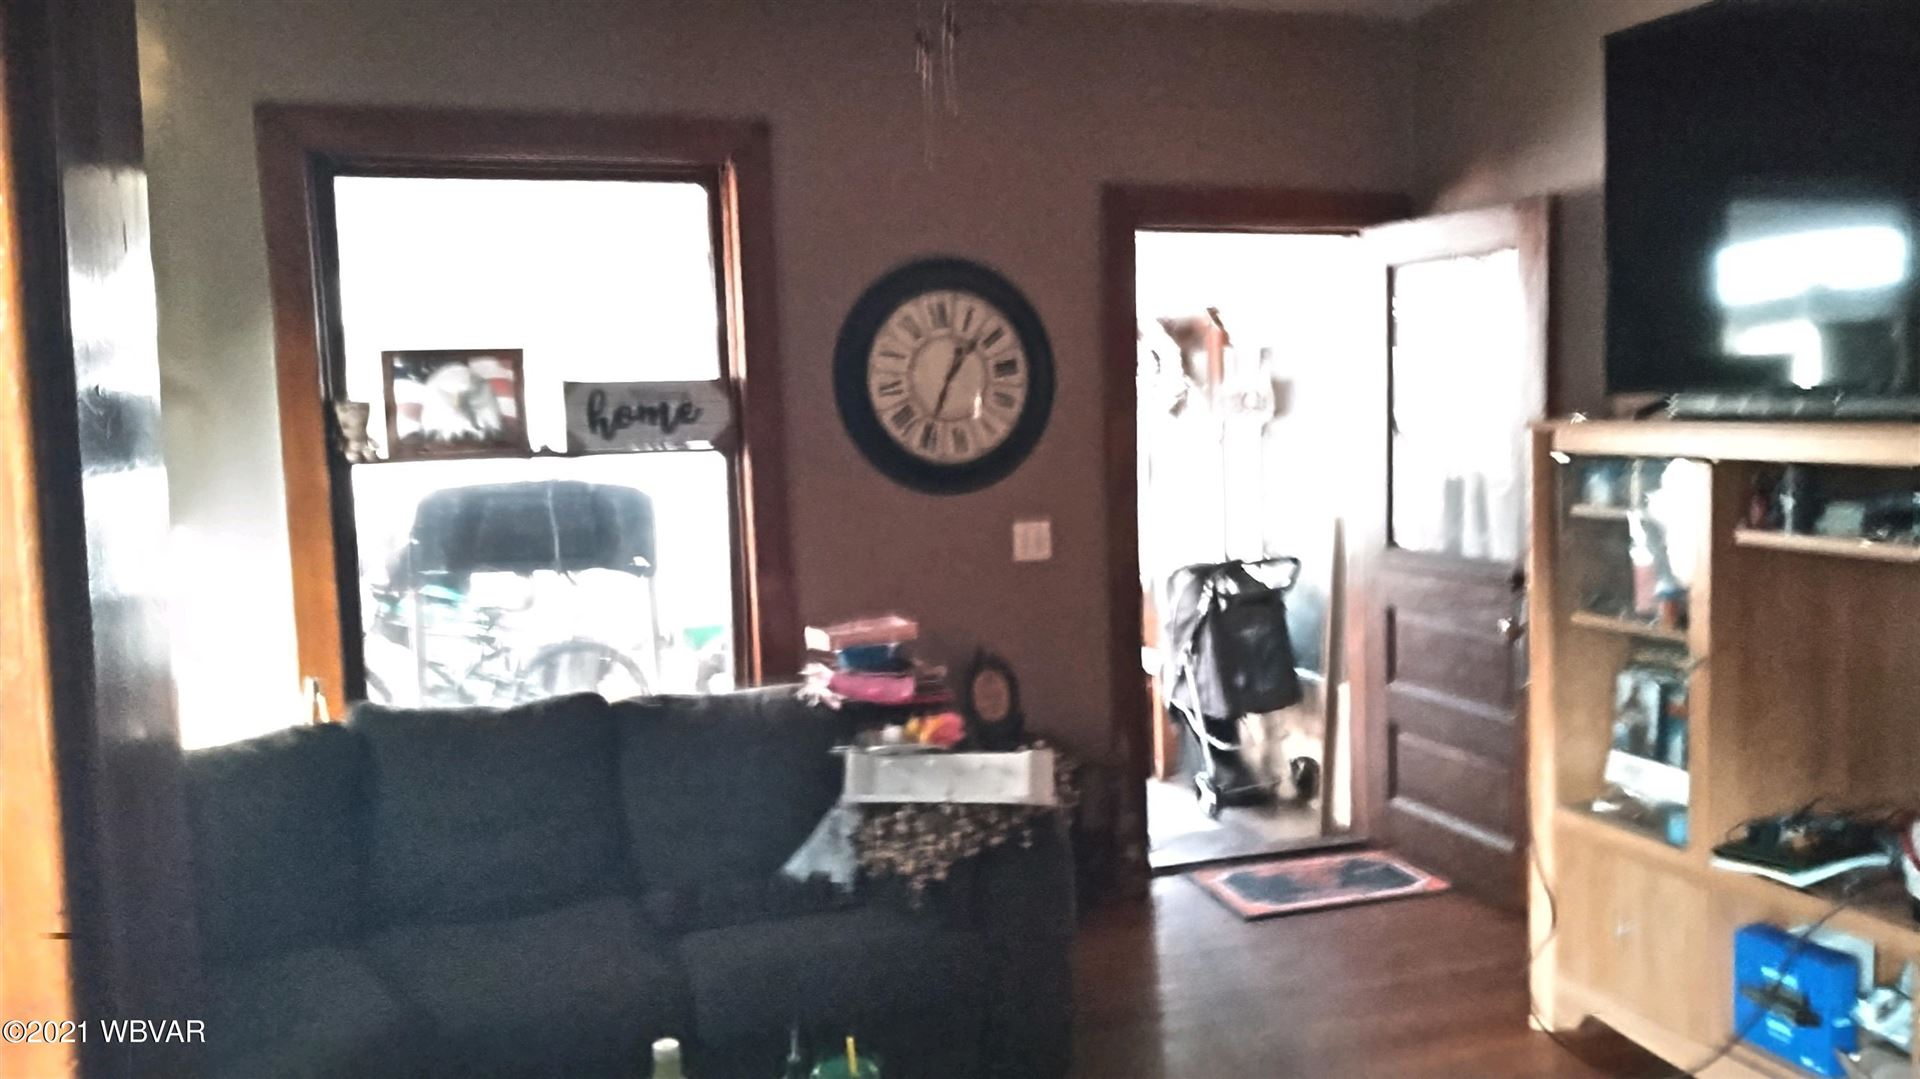 459-461 S FAIRVIEW STREET, Lock Haven, PA 17745 - #: WB-93185